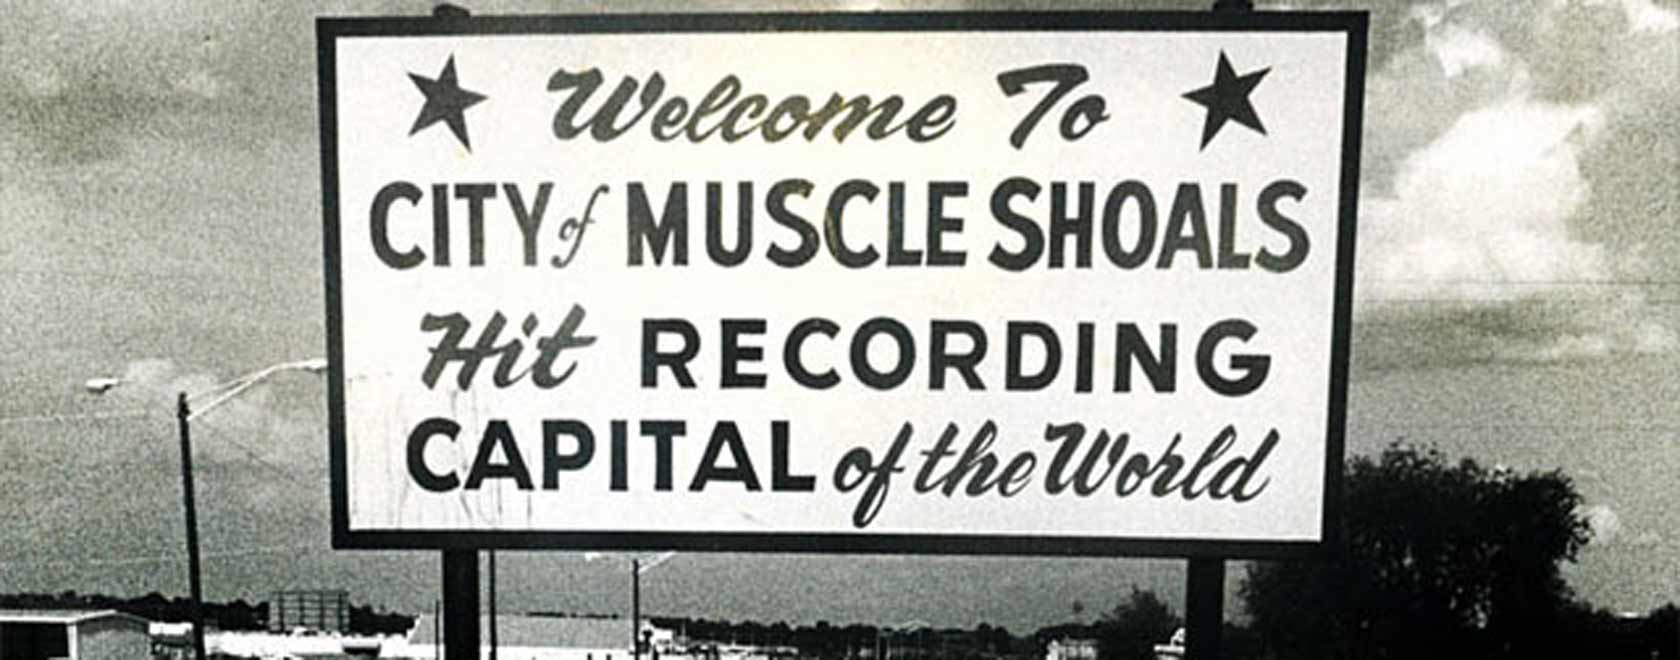 MuscleShoals-header